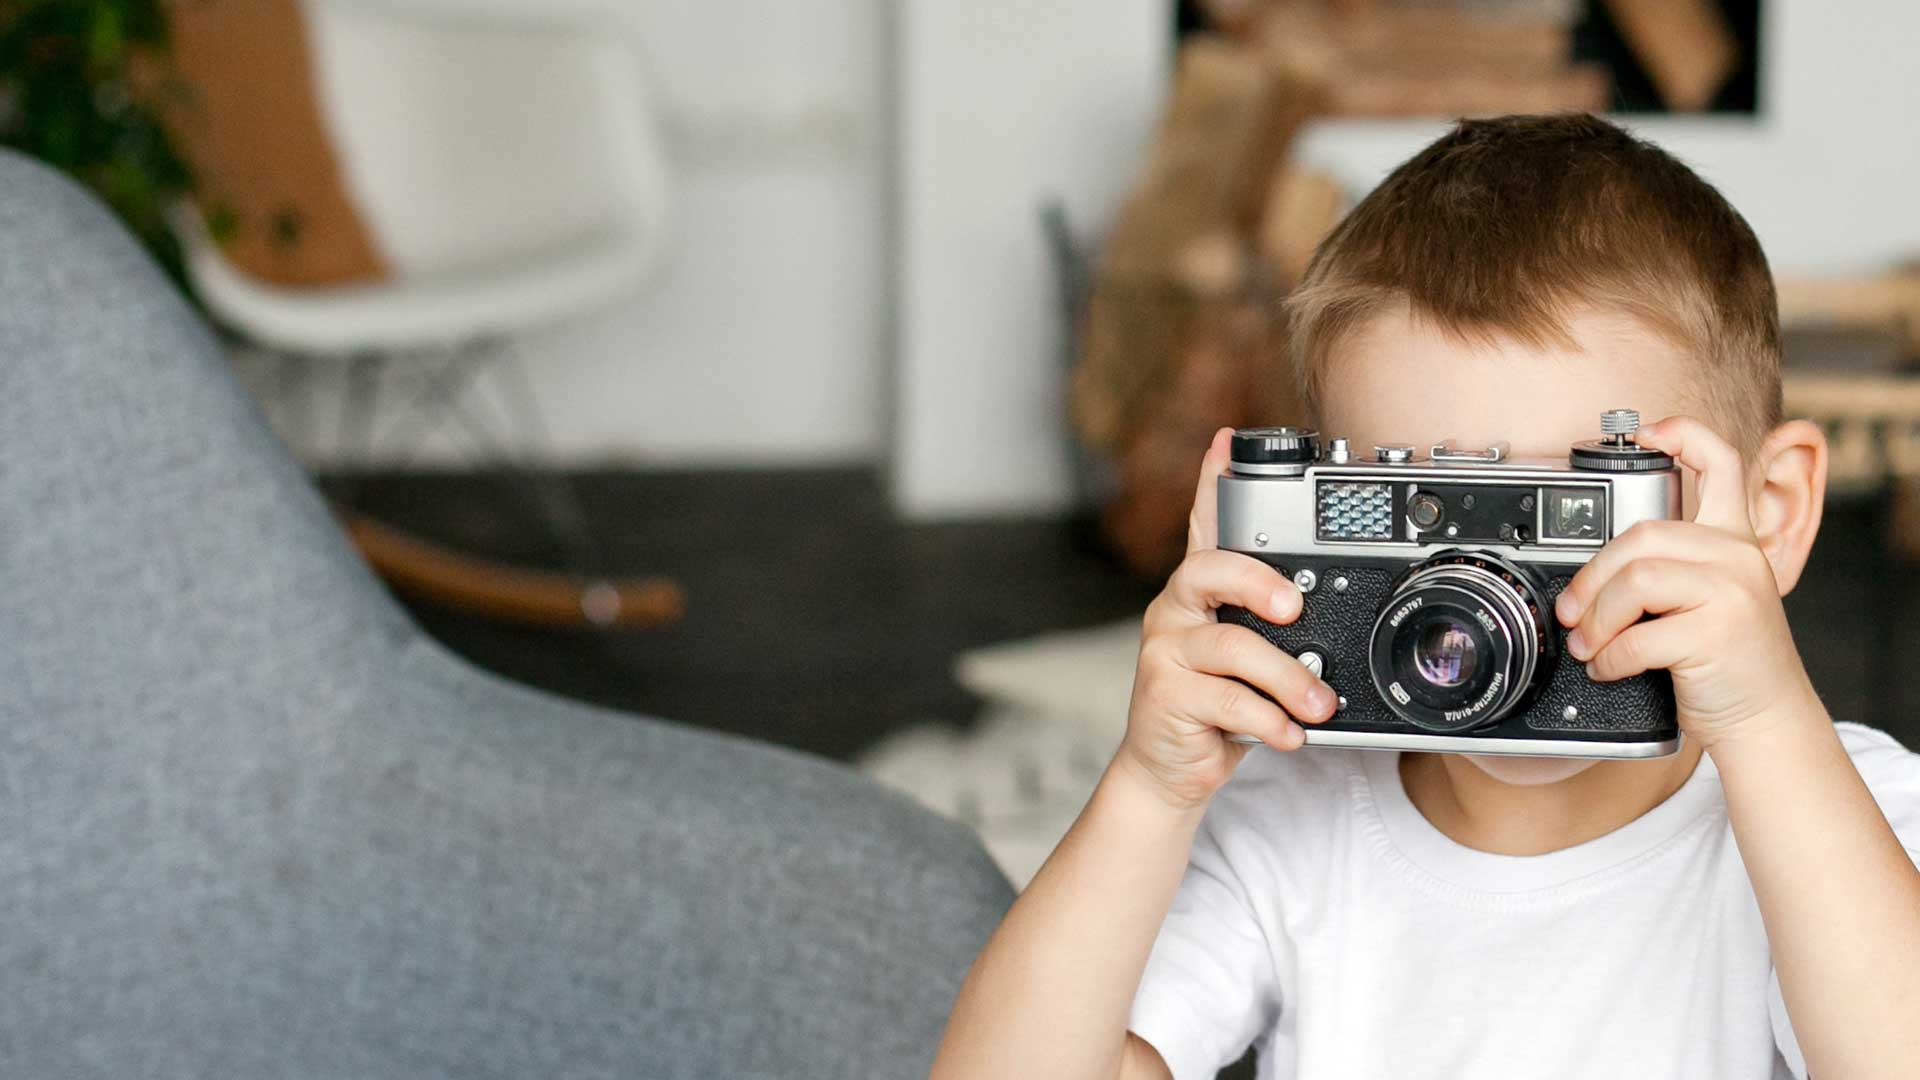 a-kid-playing-with-the-old-vintage-film-camera